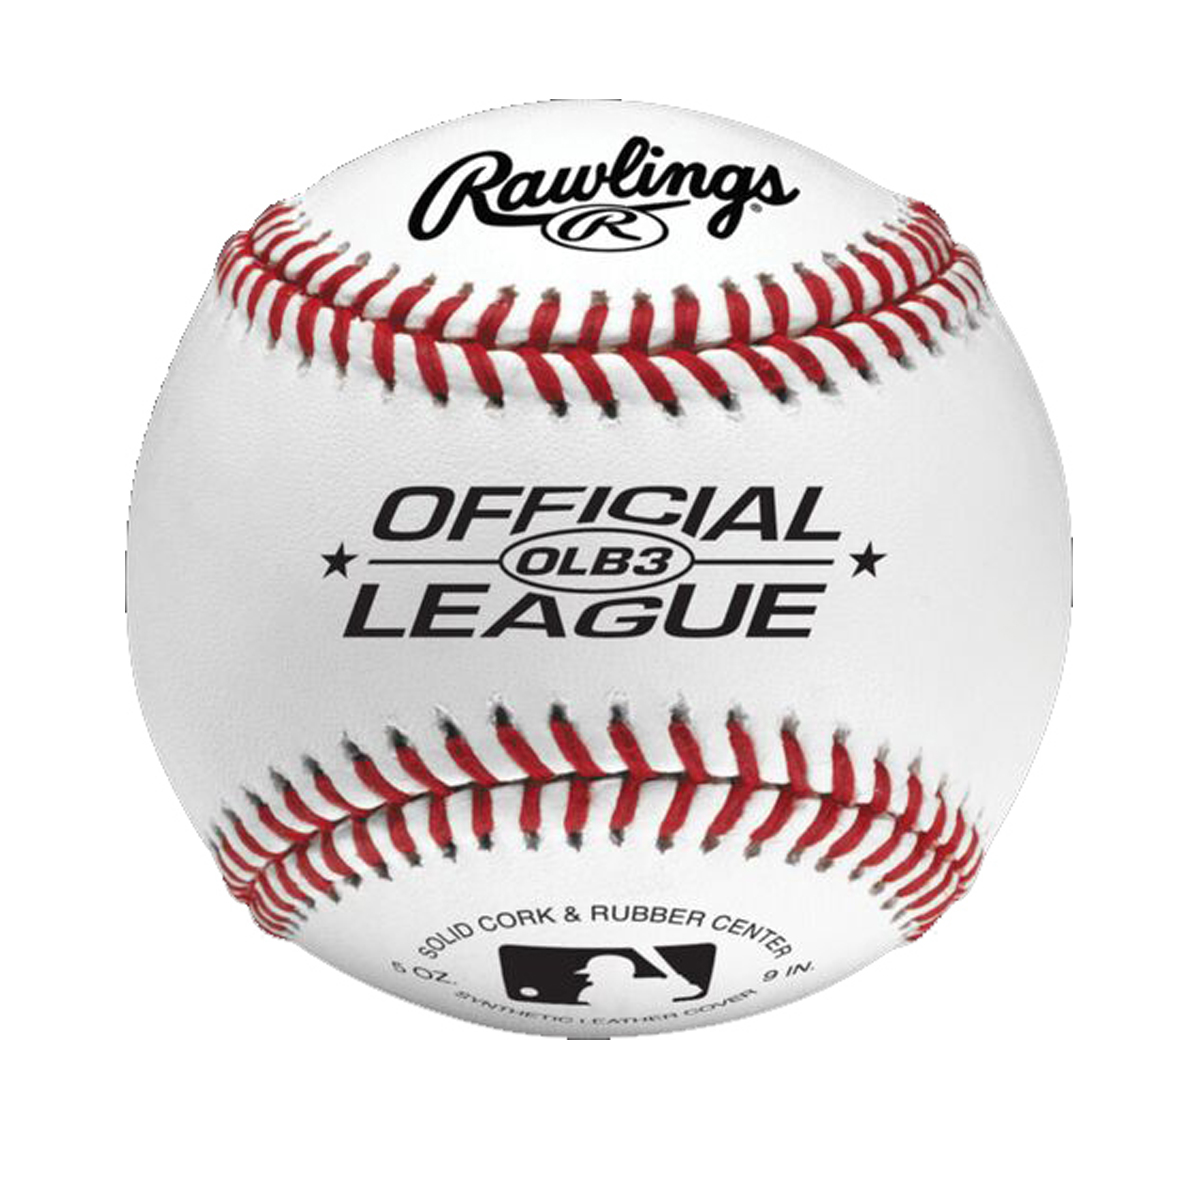 Rawlings ROLB3 Synth.Pract.Ball (Pack of 12)